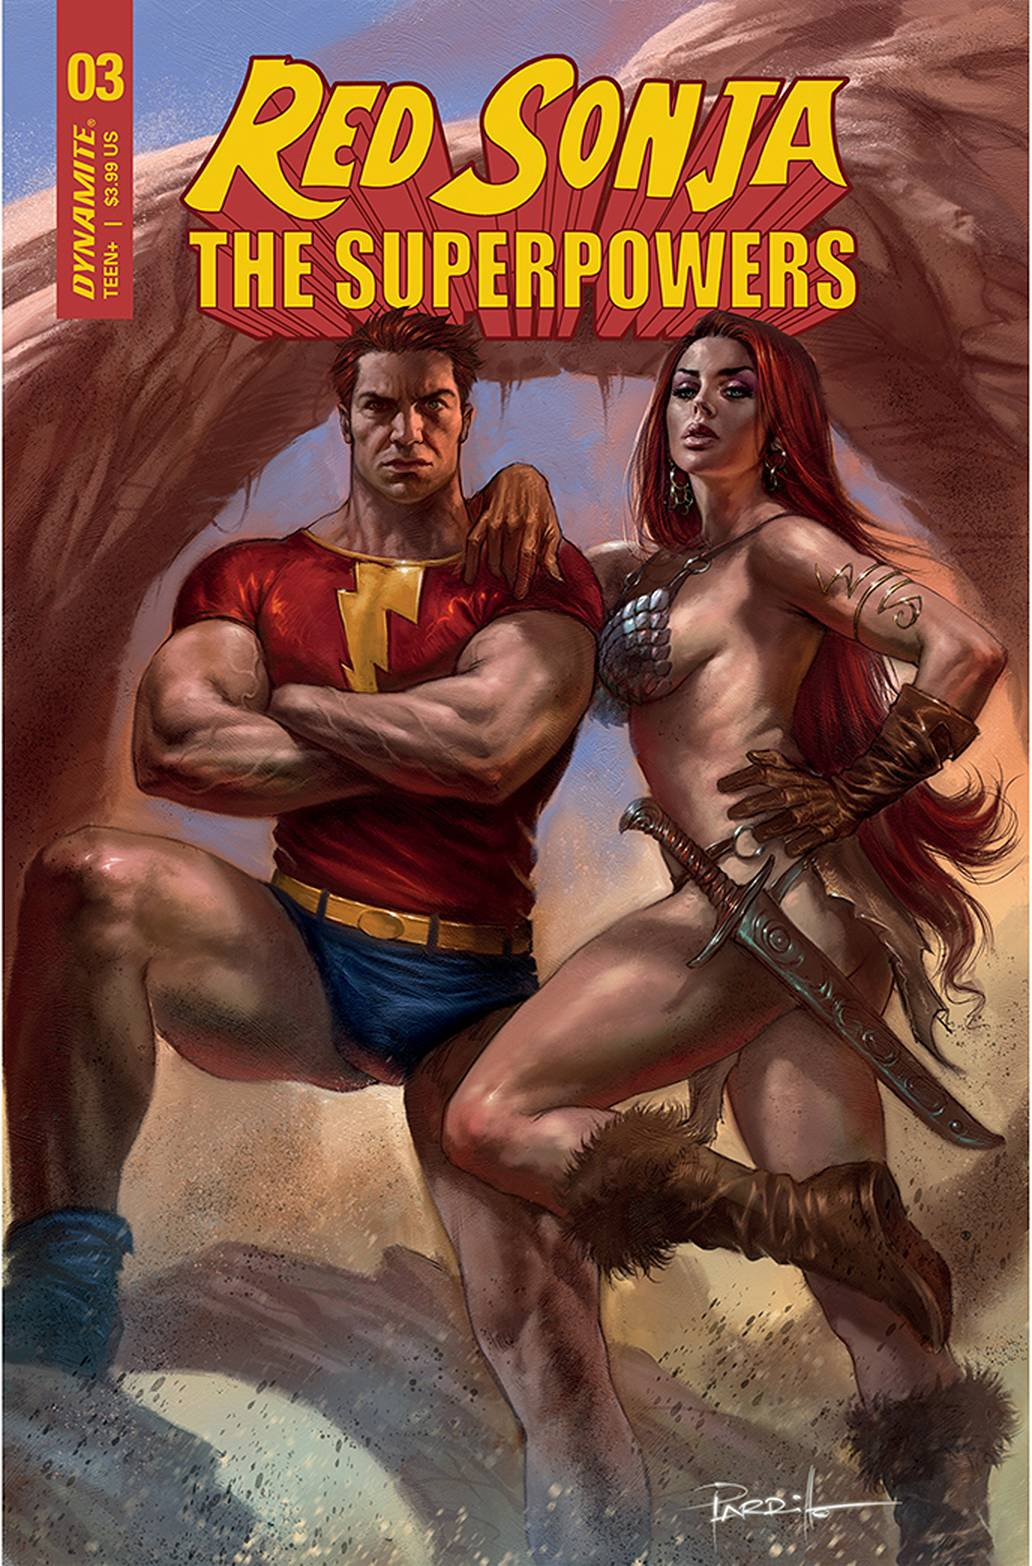 RED SONJA THE SUPERPOWERS #3 CVR A PARRILLO